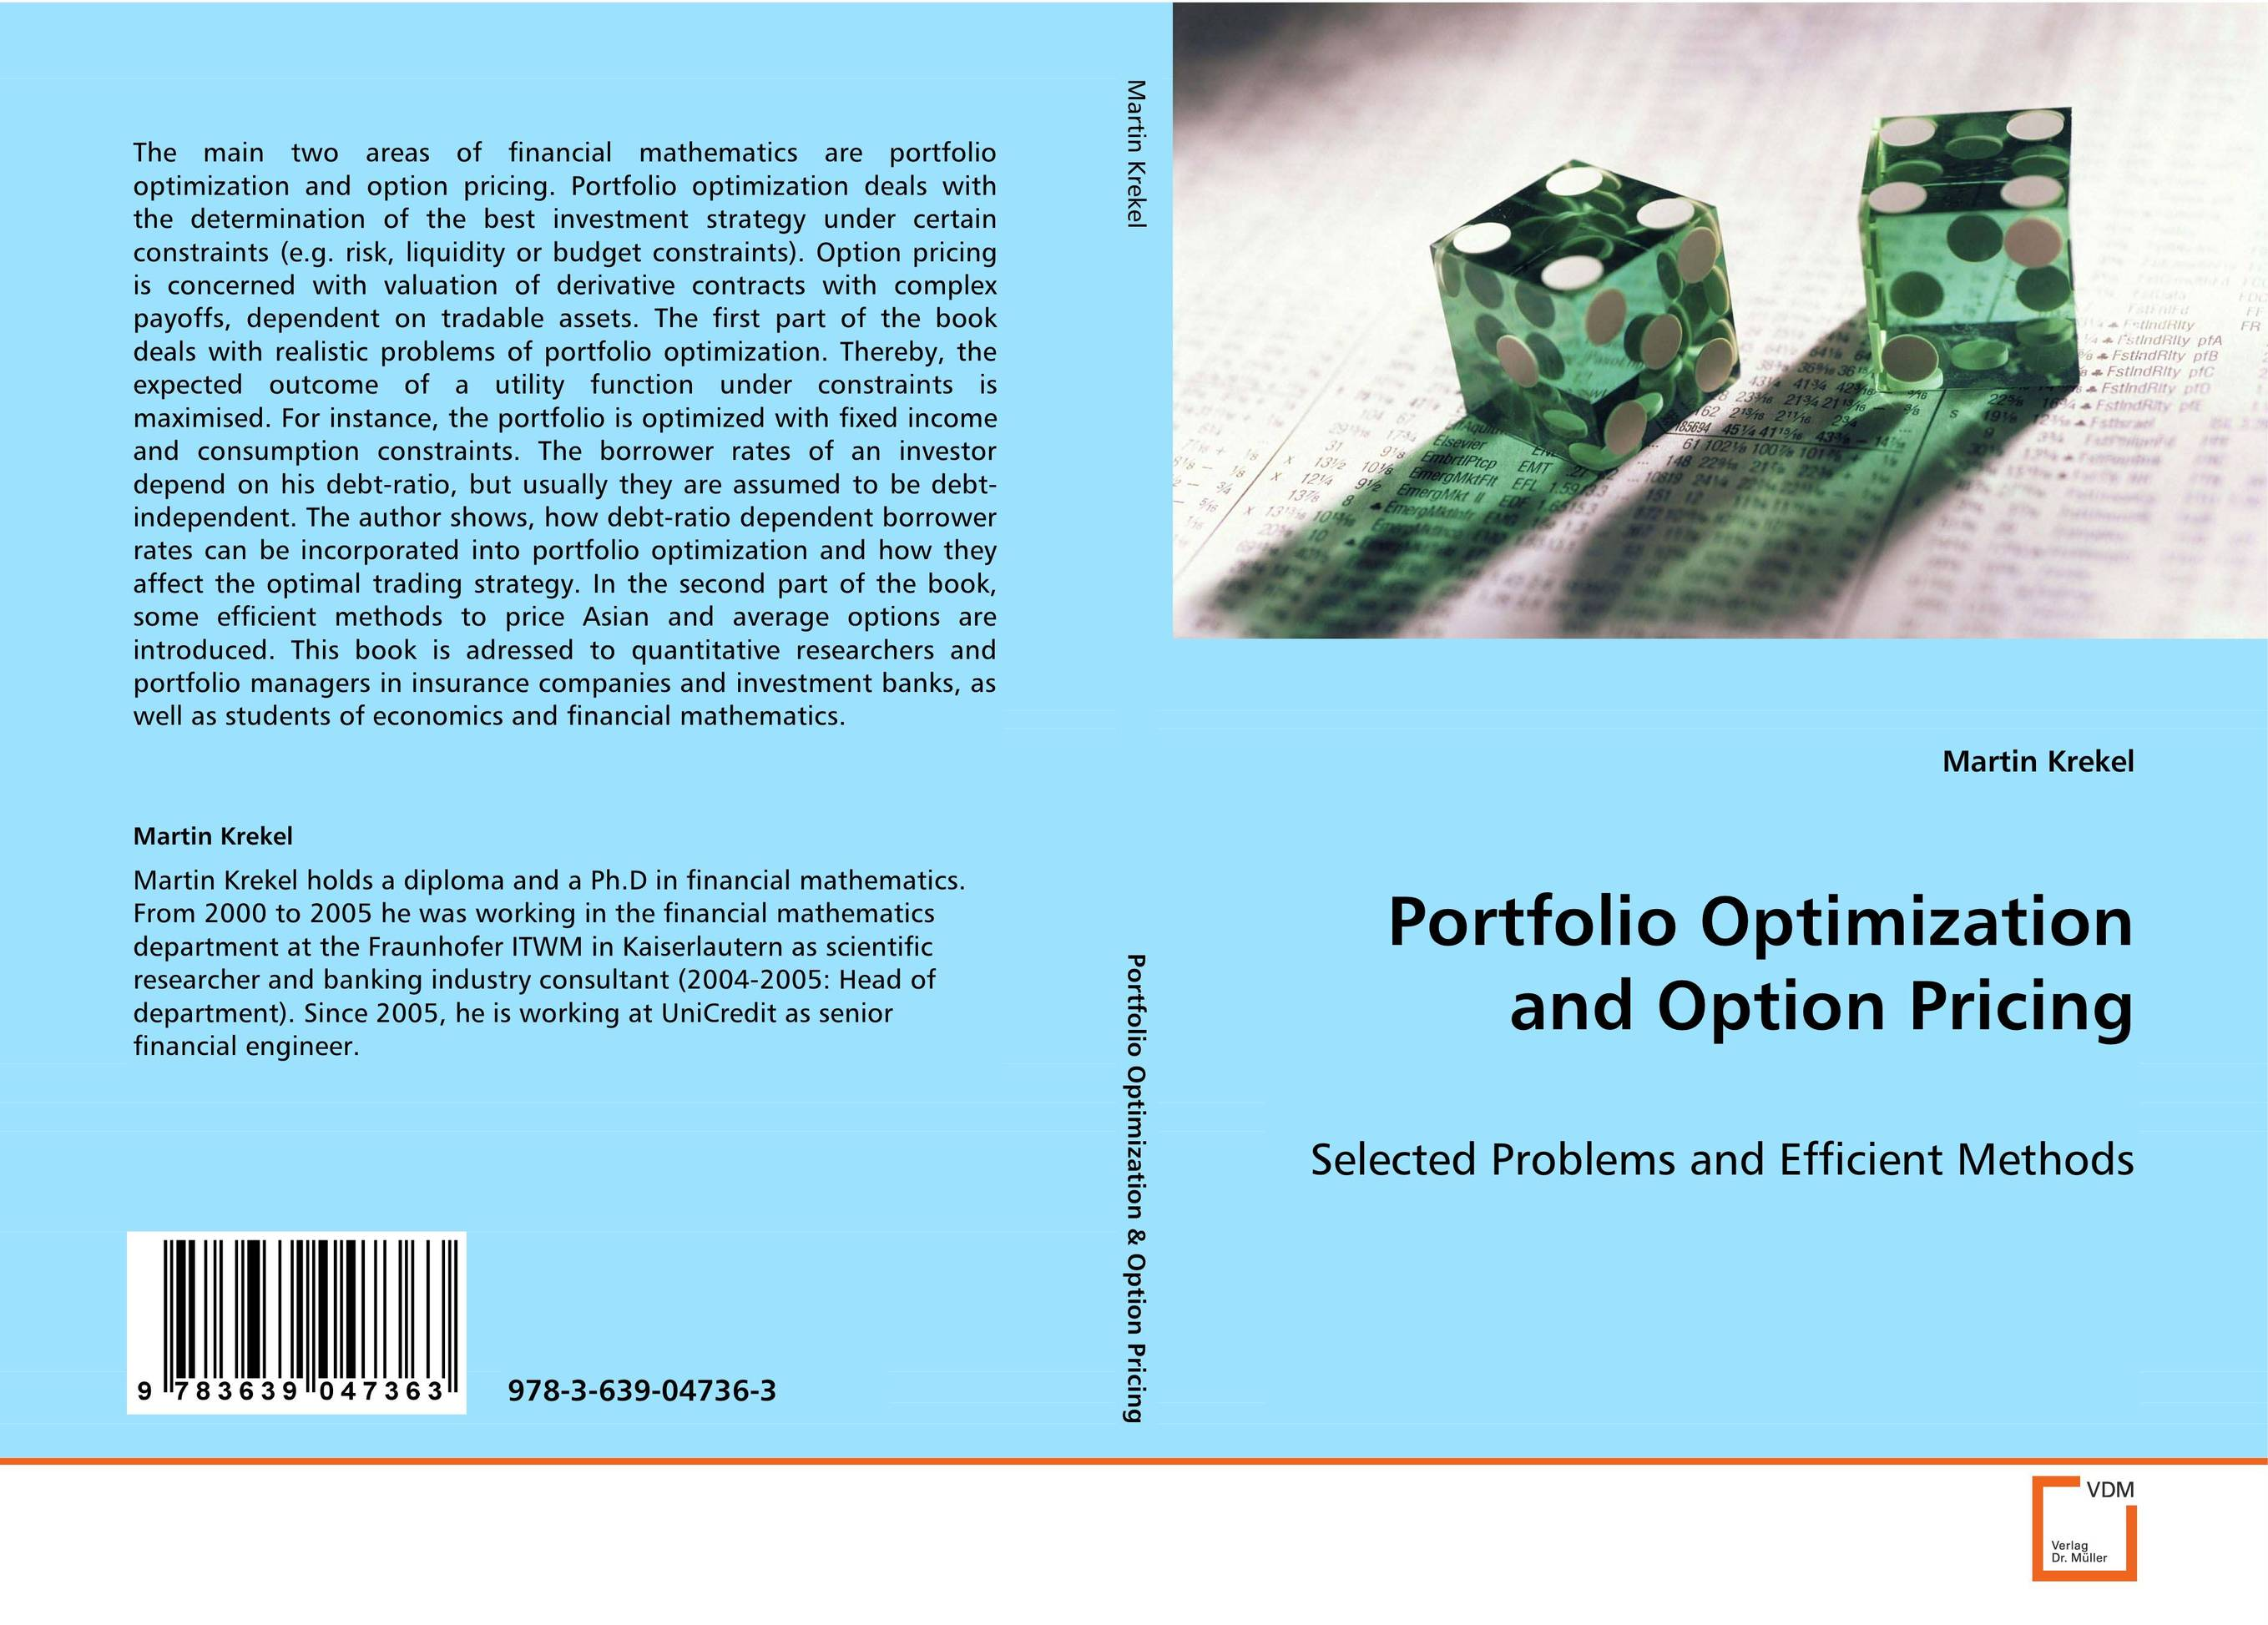 Portfolio Optimization and Option Pricing the borrower